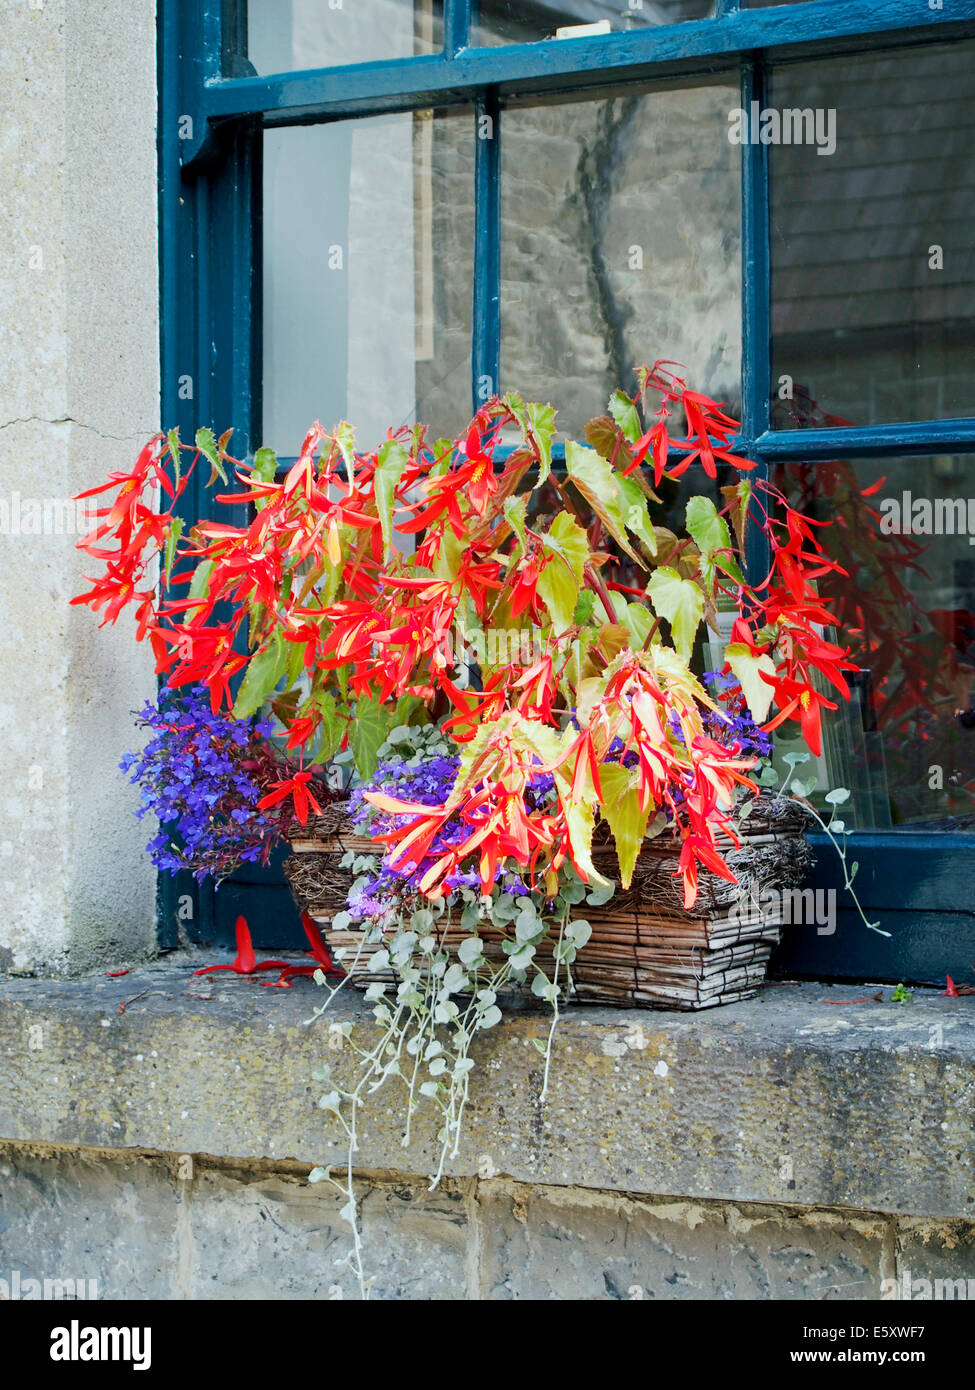 Brightly coloured flowers in a wicker window box on a stone cill with a blue painted sash window behind - Stock Image